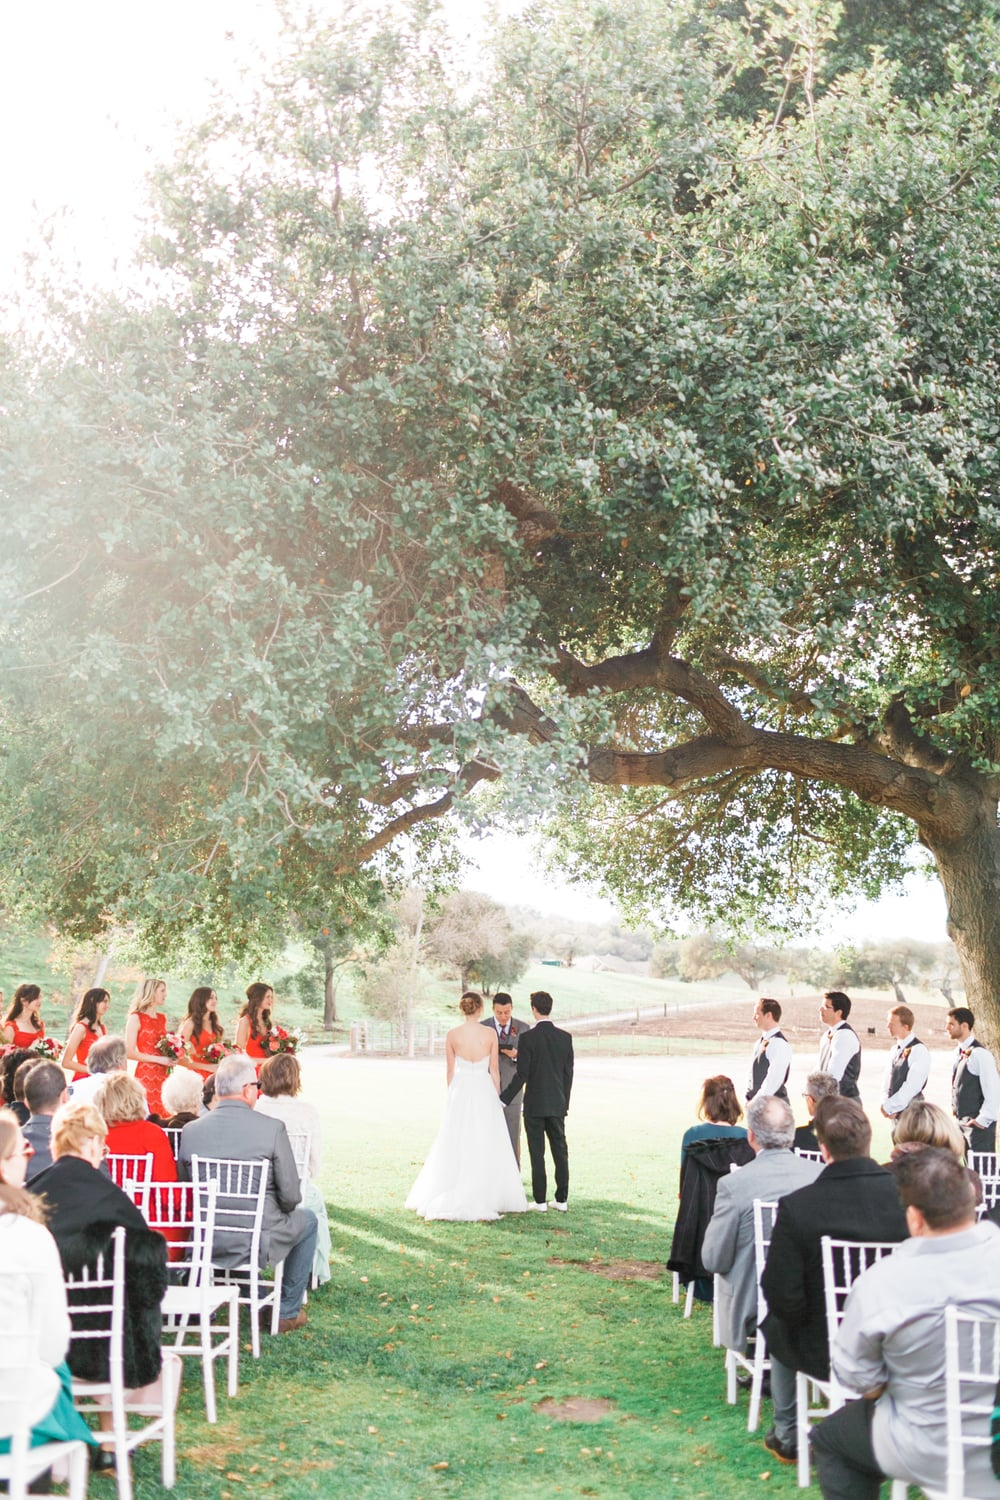 Natalie_Schutt_Photography_Winter_Wedding_San_Luis_Obispo-108.jpg